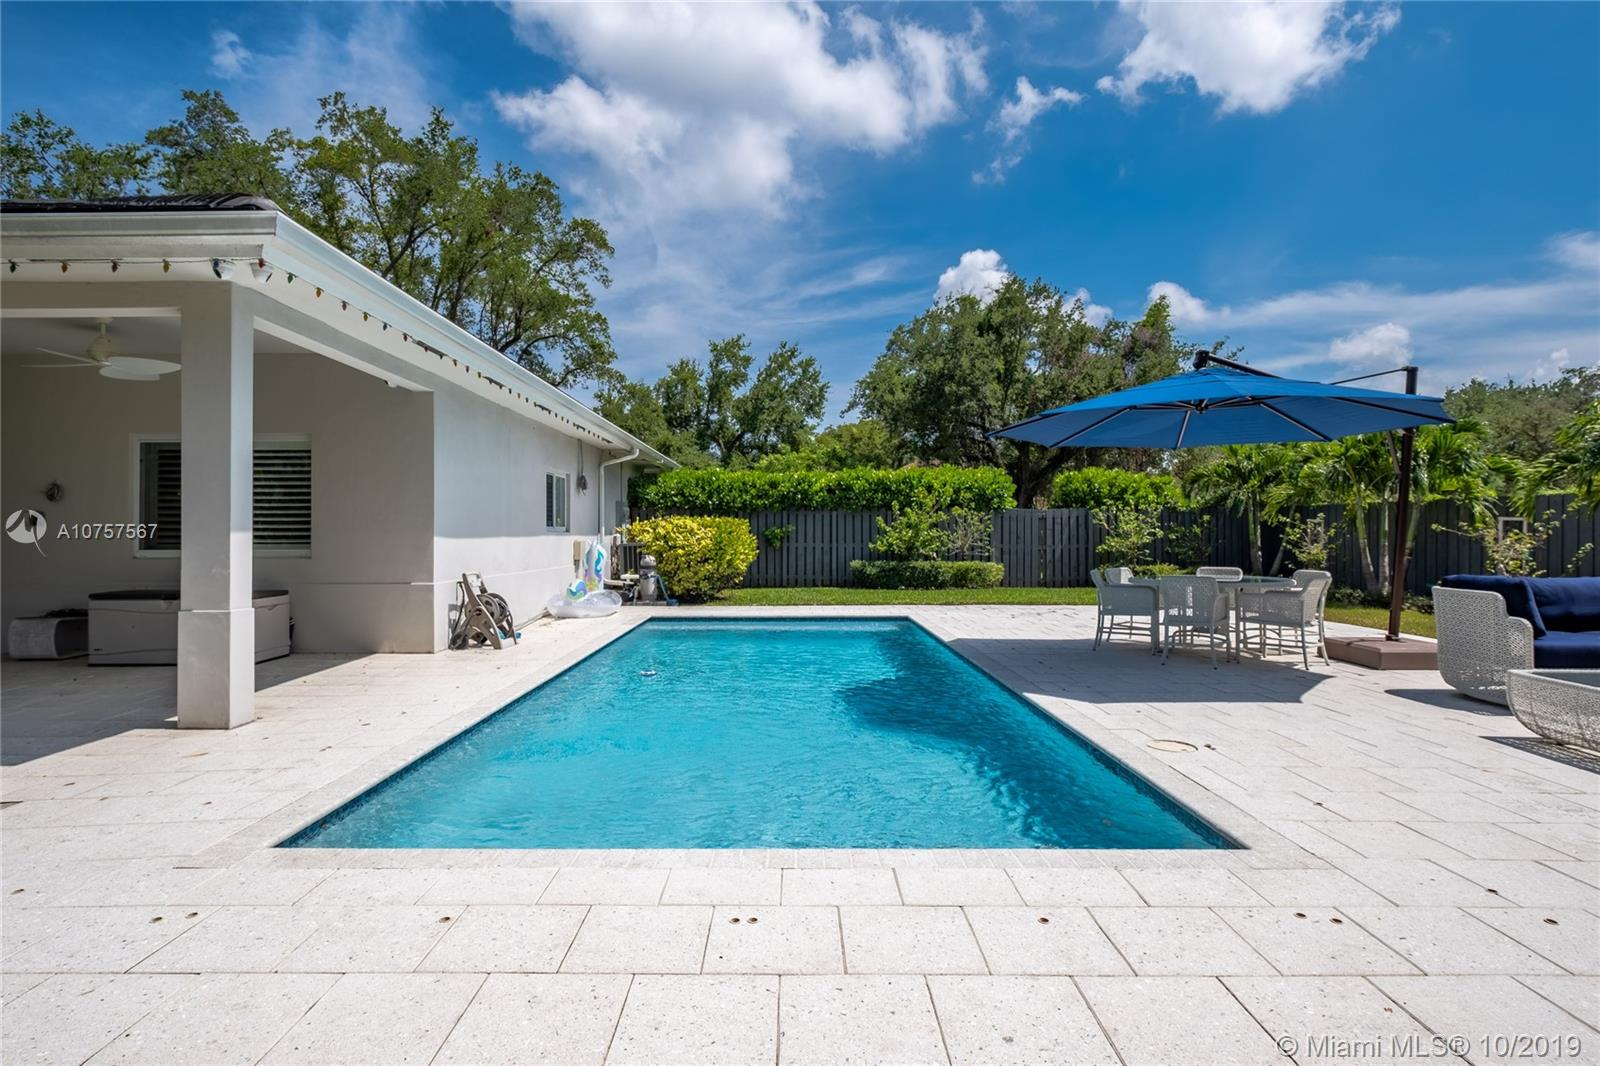 9301 SW 149th St, Kendall in Miami-dade County County, FL 33176 Home for Sale